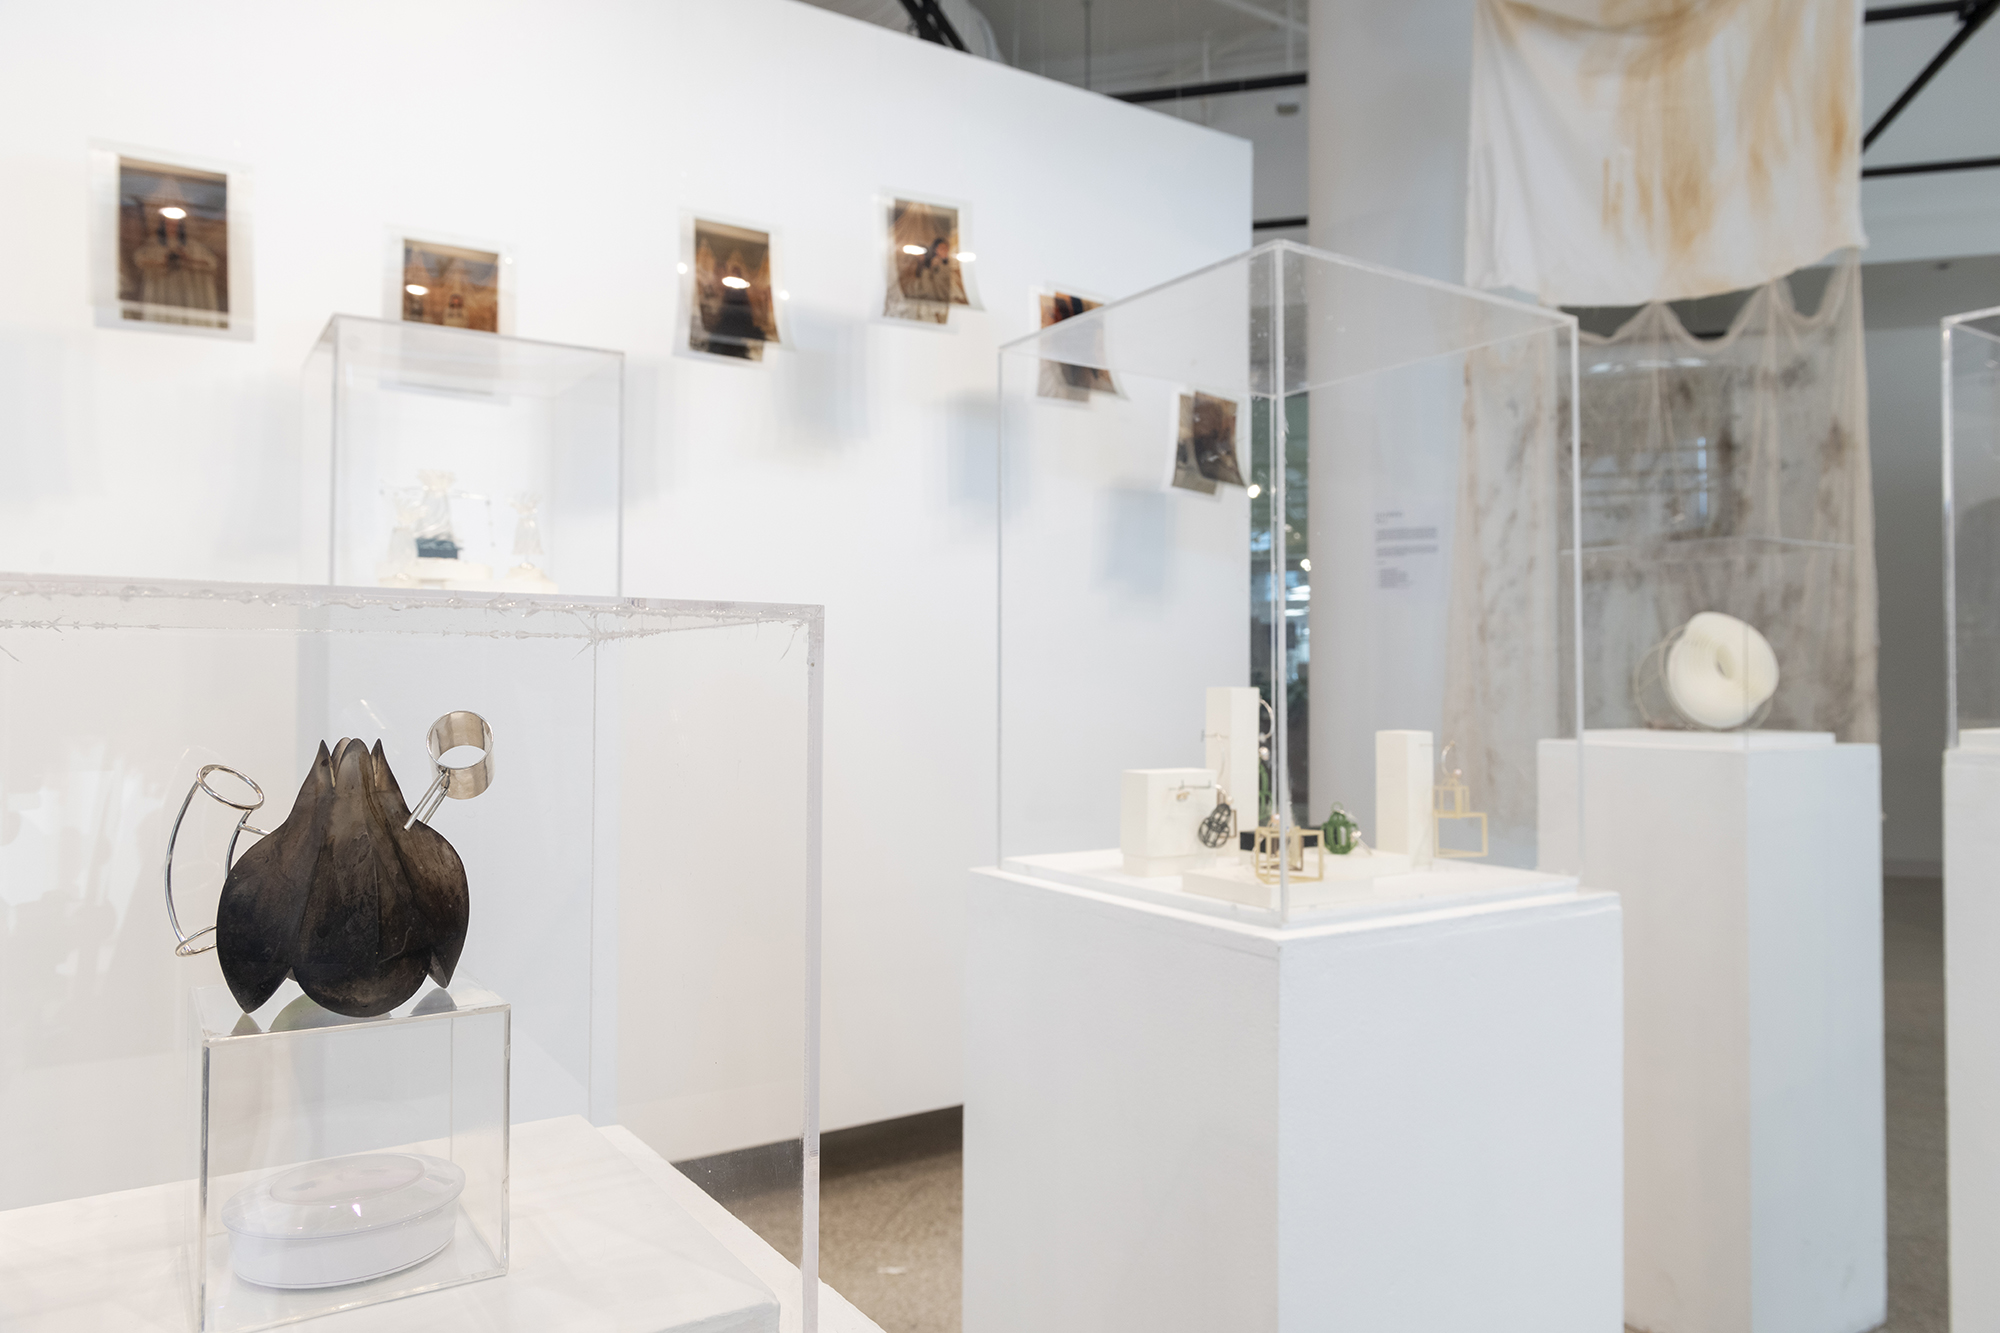 A photo of jewelry designs in display cases.